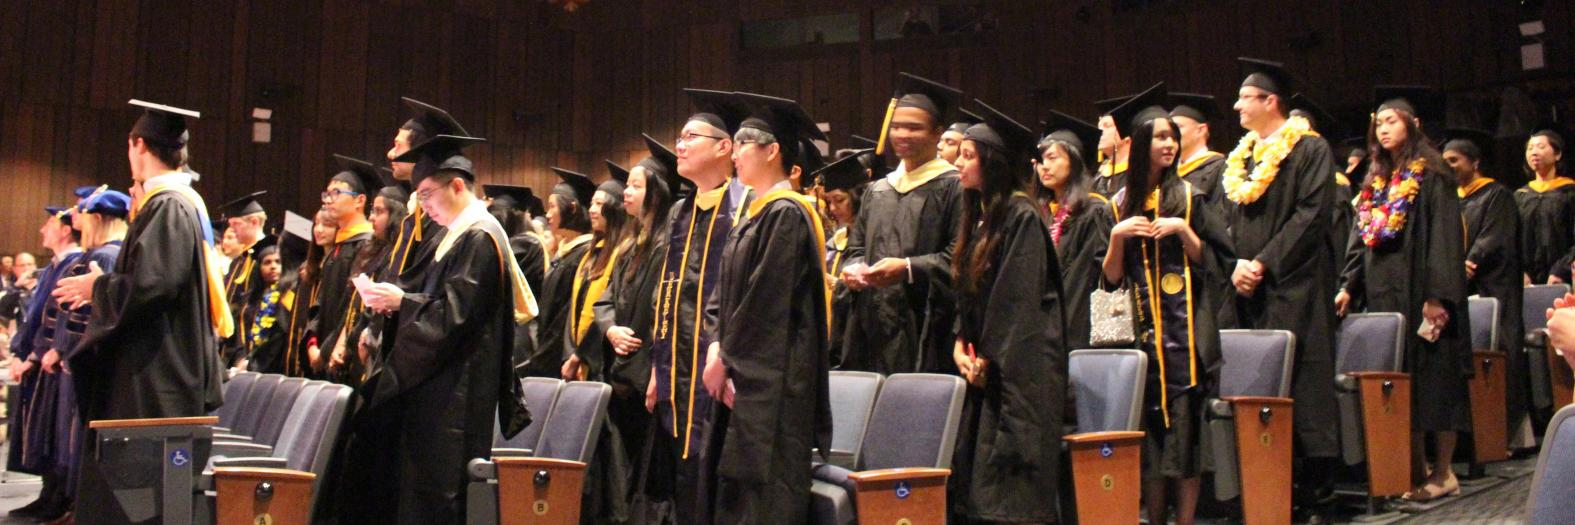 Graduates in the audience at Wheeler